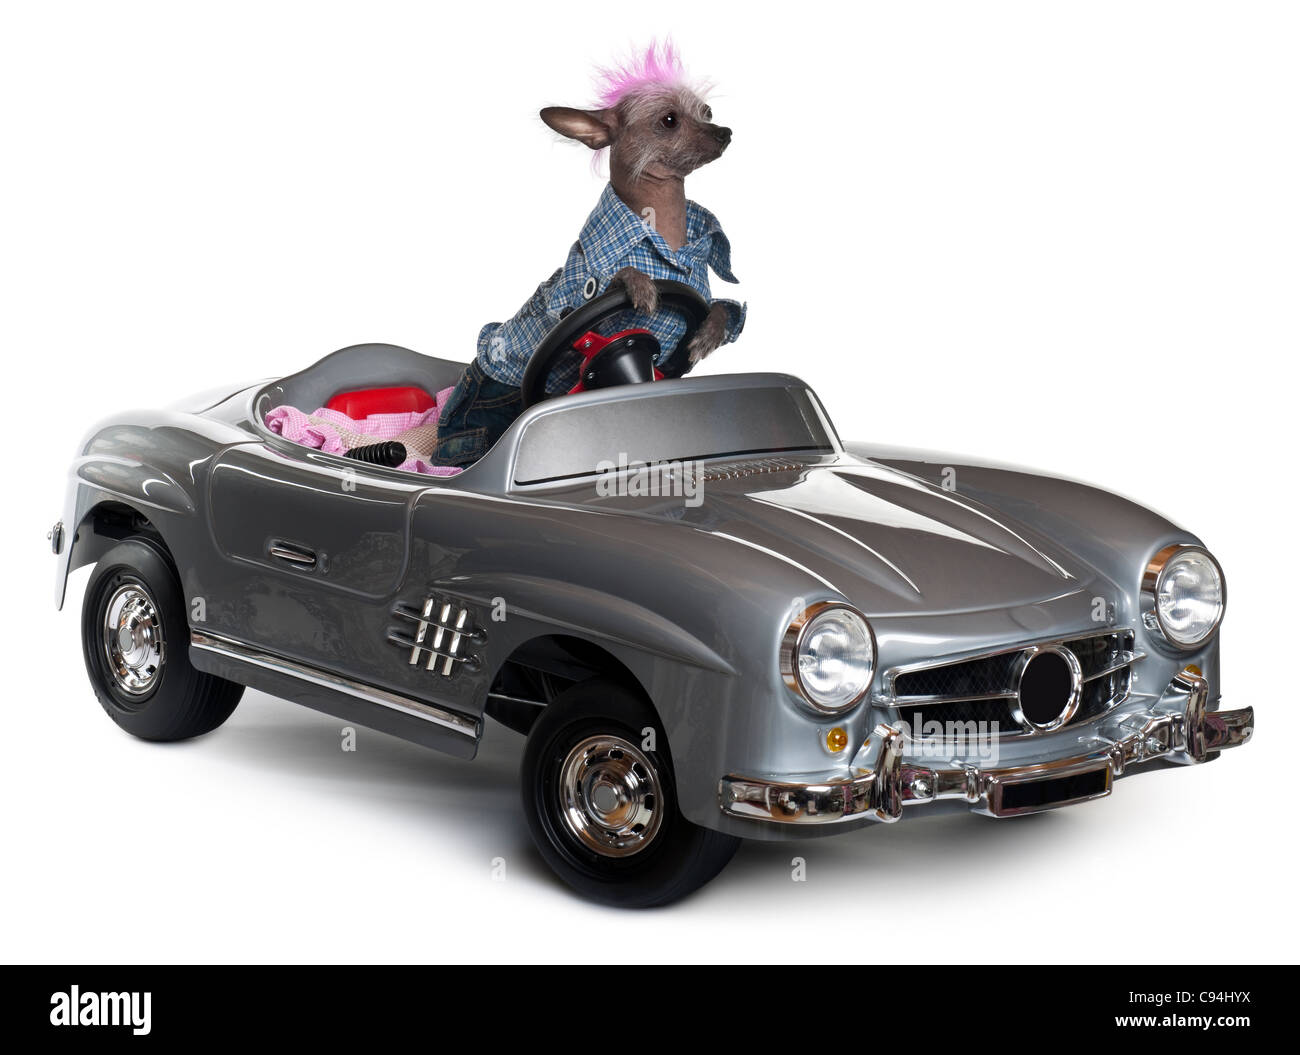 Chinese Crested dog driving convertible in front of white background - Stock Image